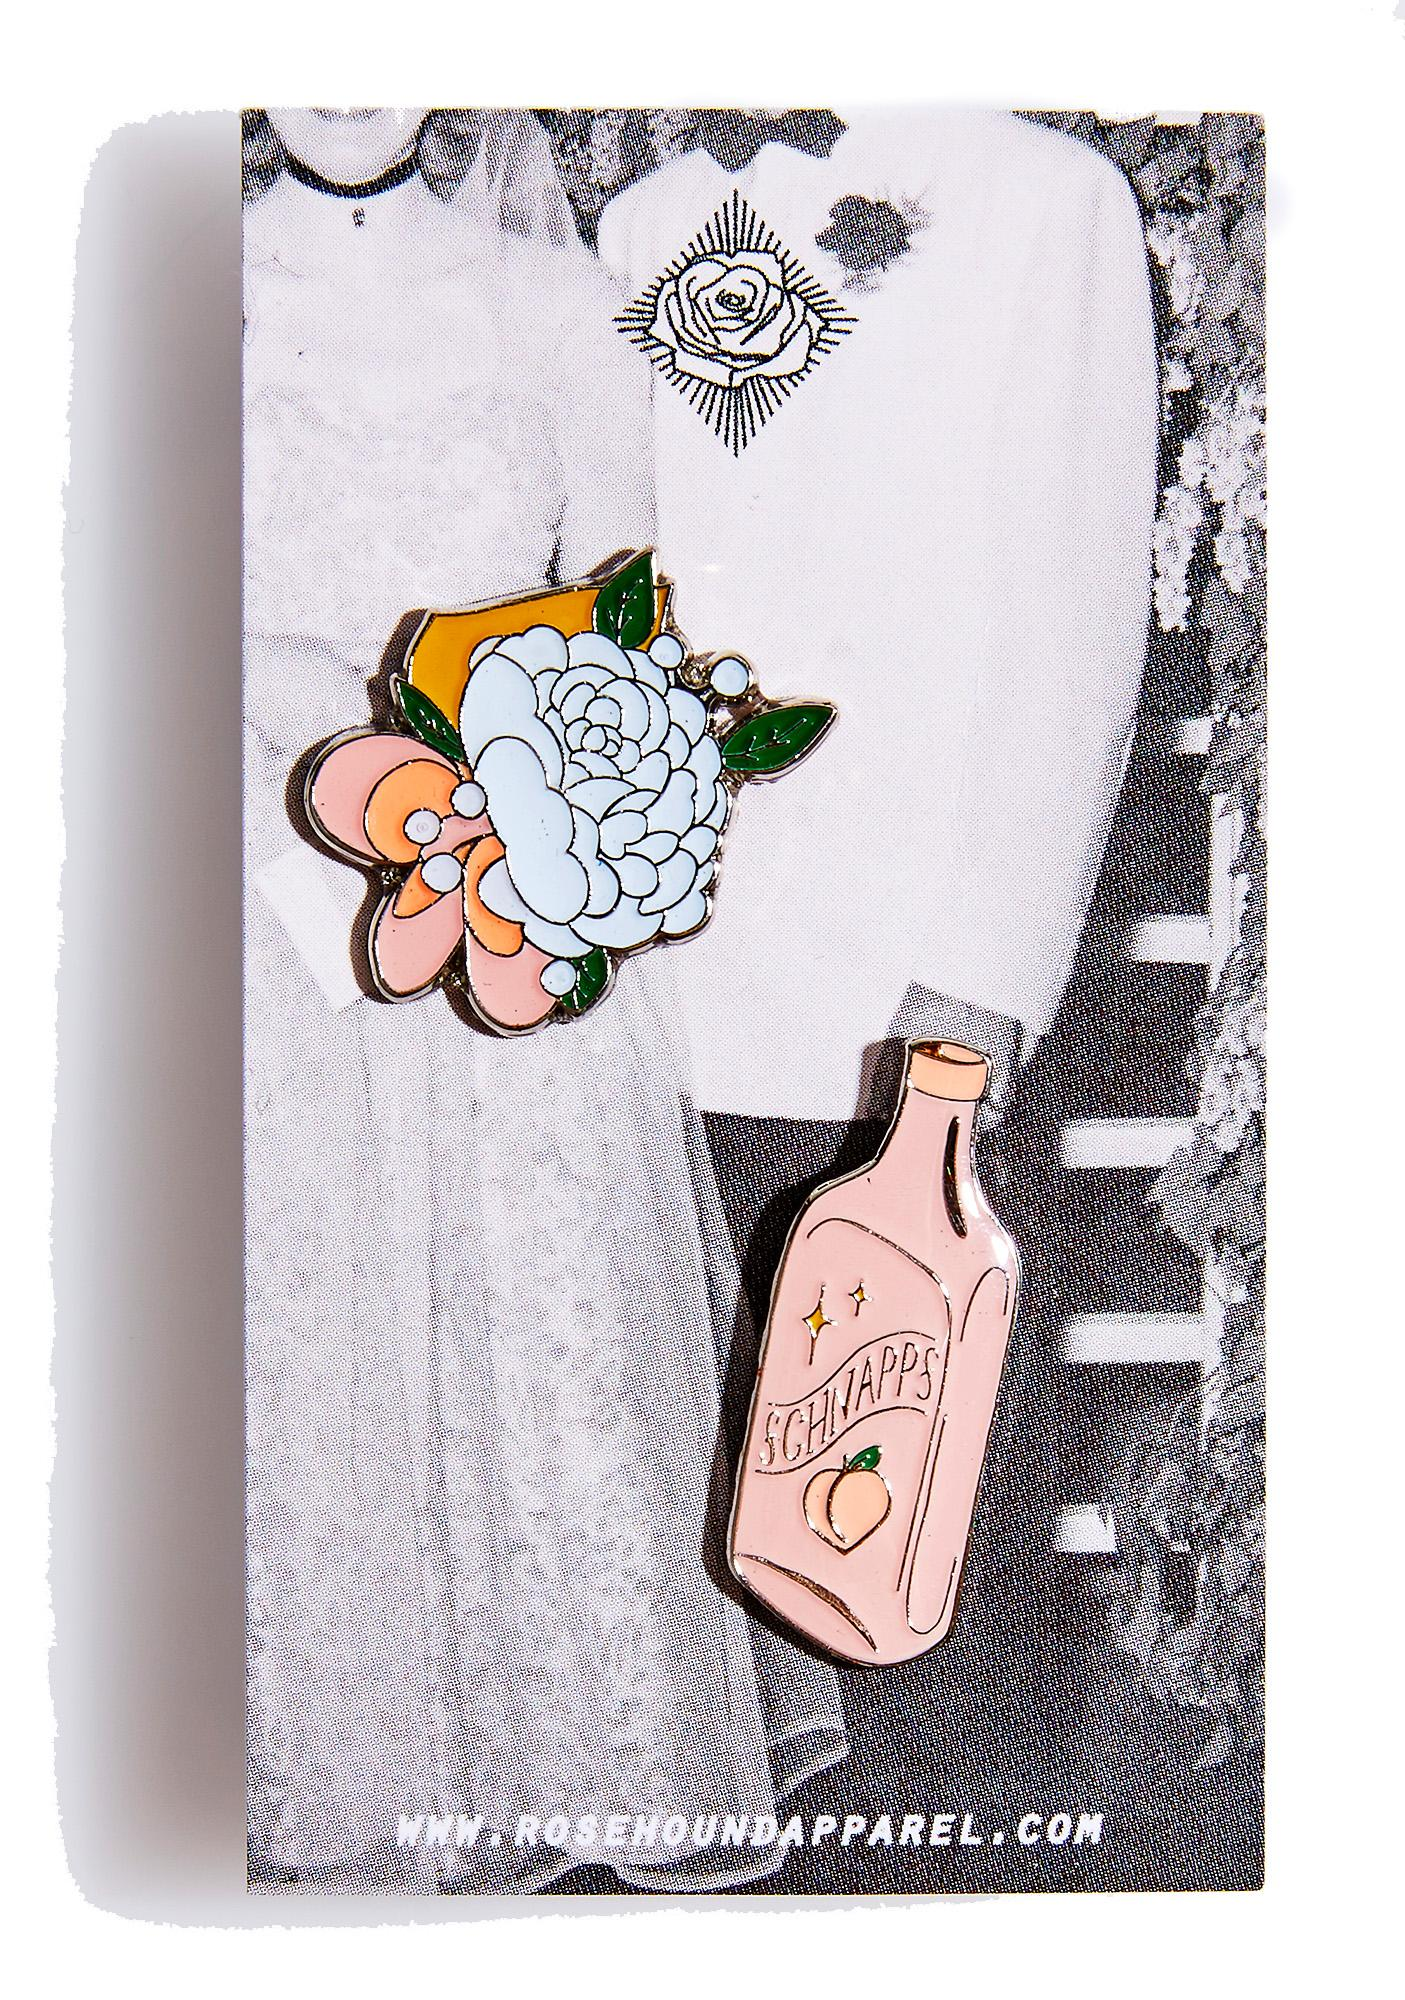 Rosehound Apparel Prom Nite Enamel Pin Set